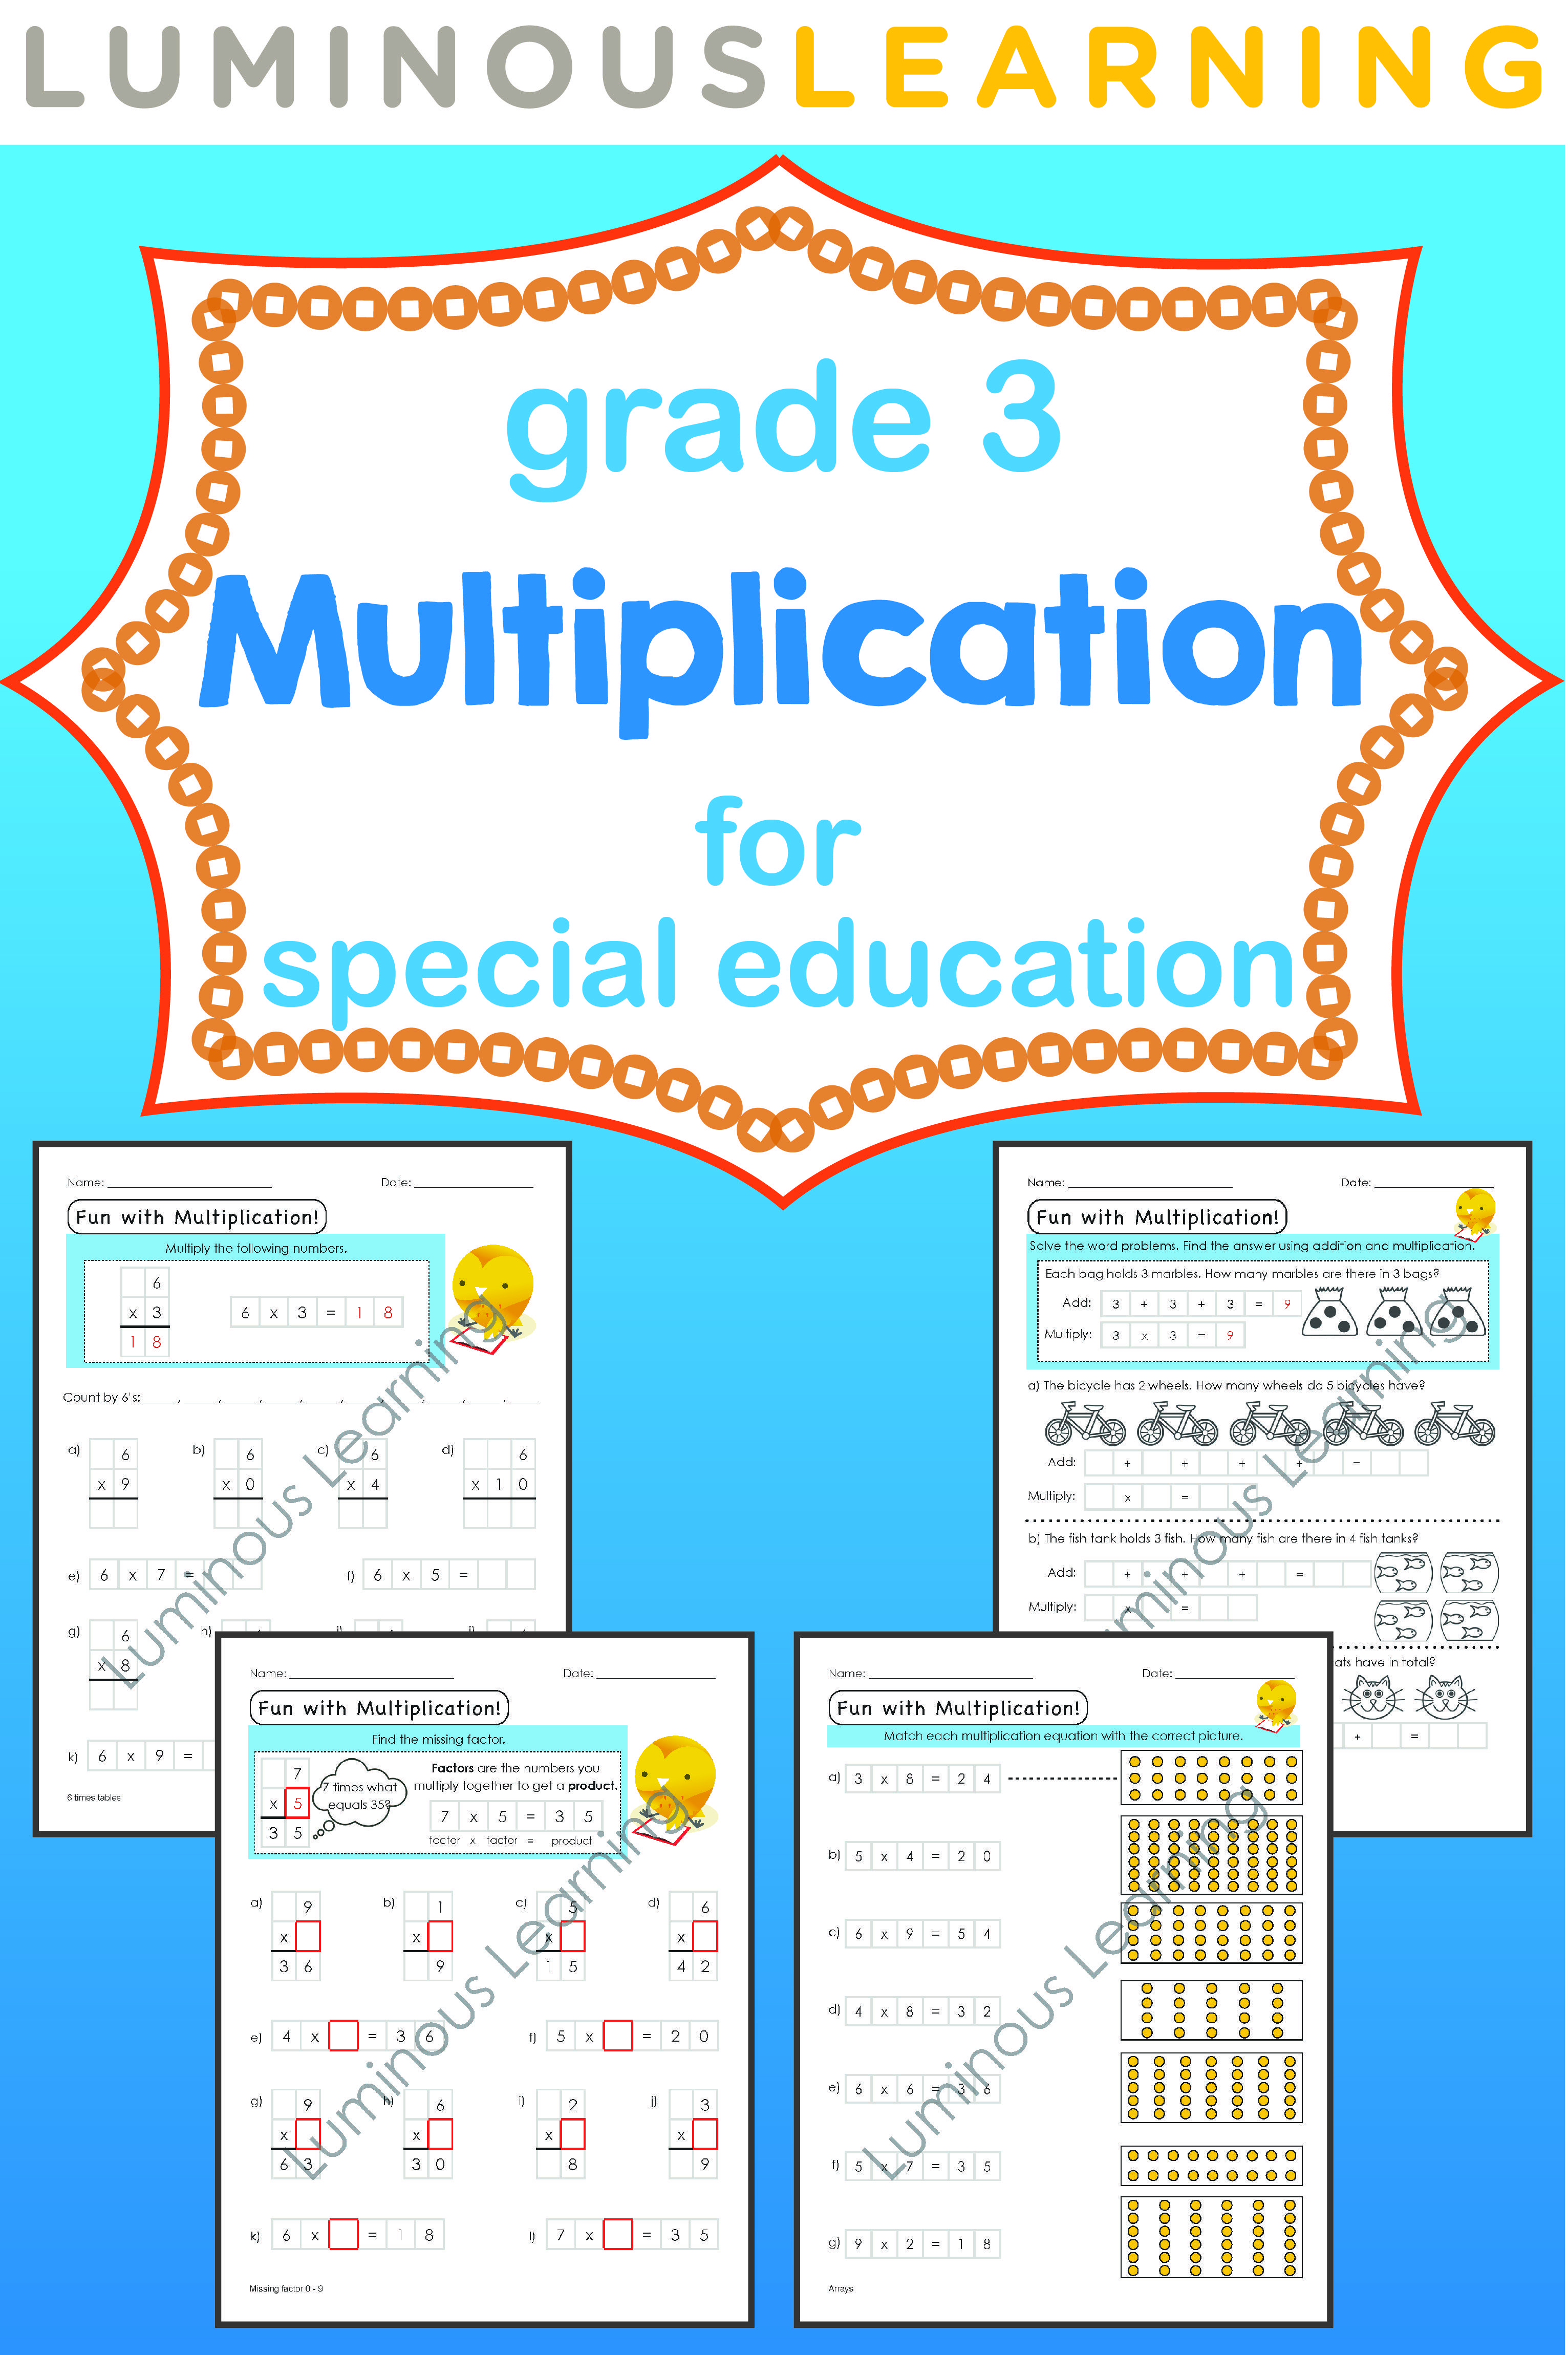 Grade 3 Multiplication Printable Workbook | Visual aids, Graph paper ...